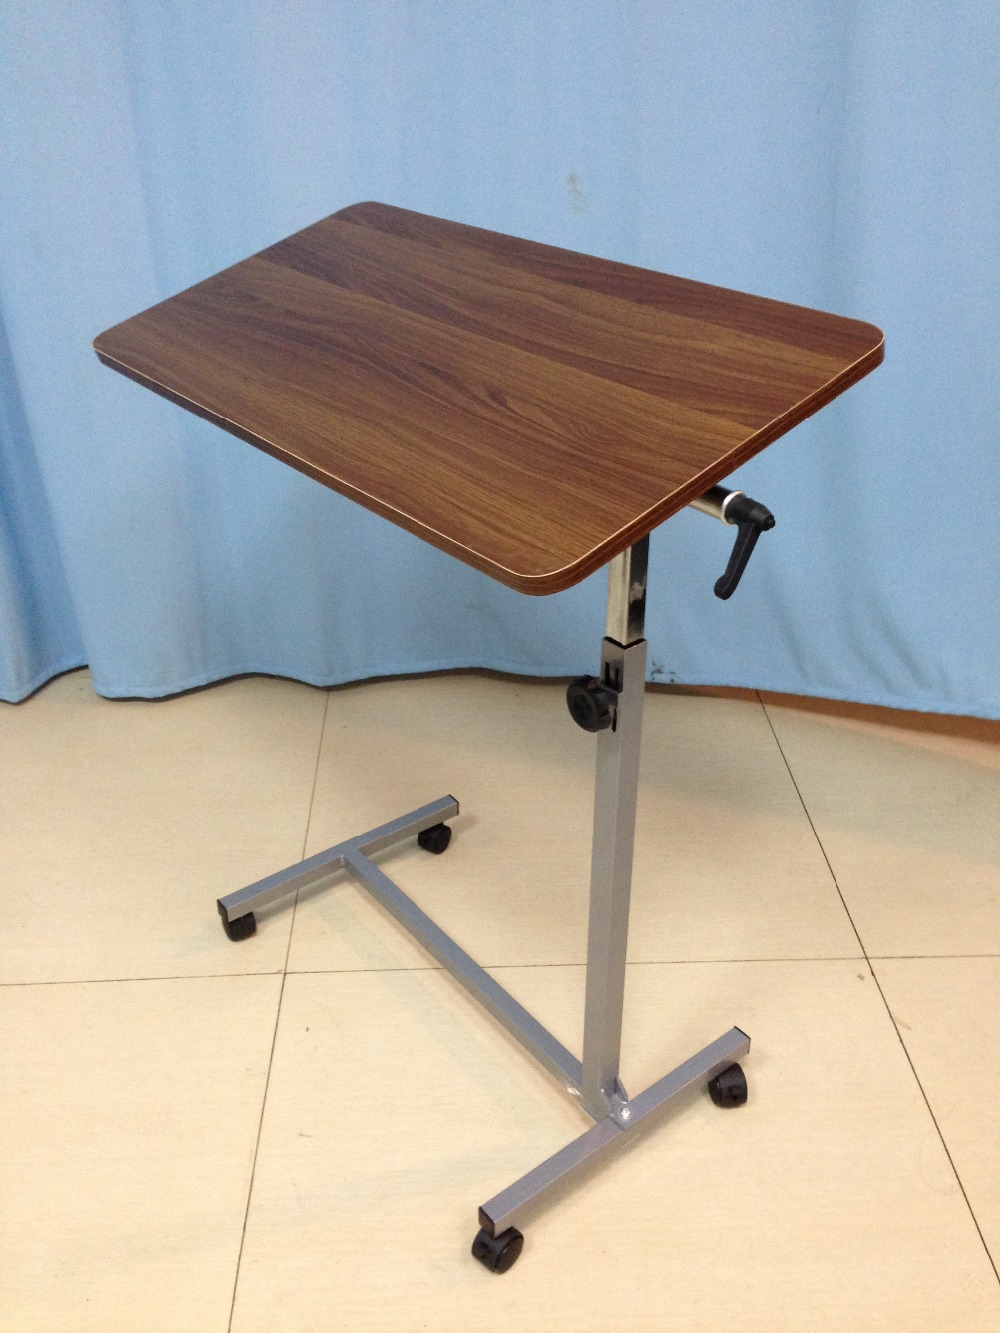 abs table side tray bed drawers used adjustable bedside over with hospital tables drawer